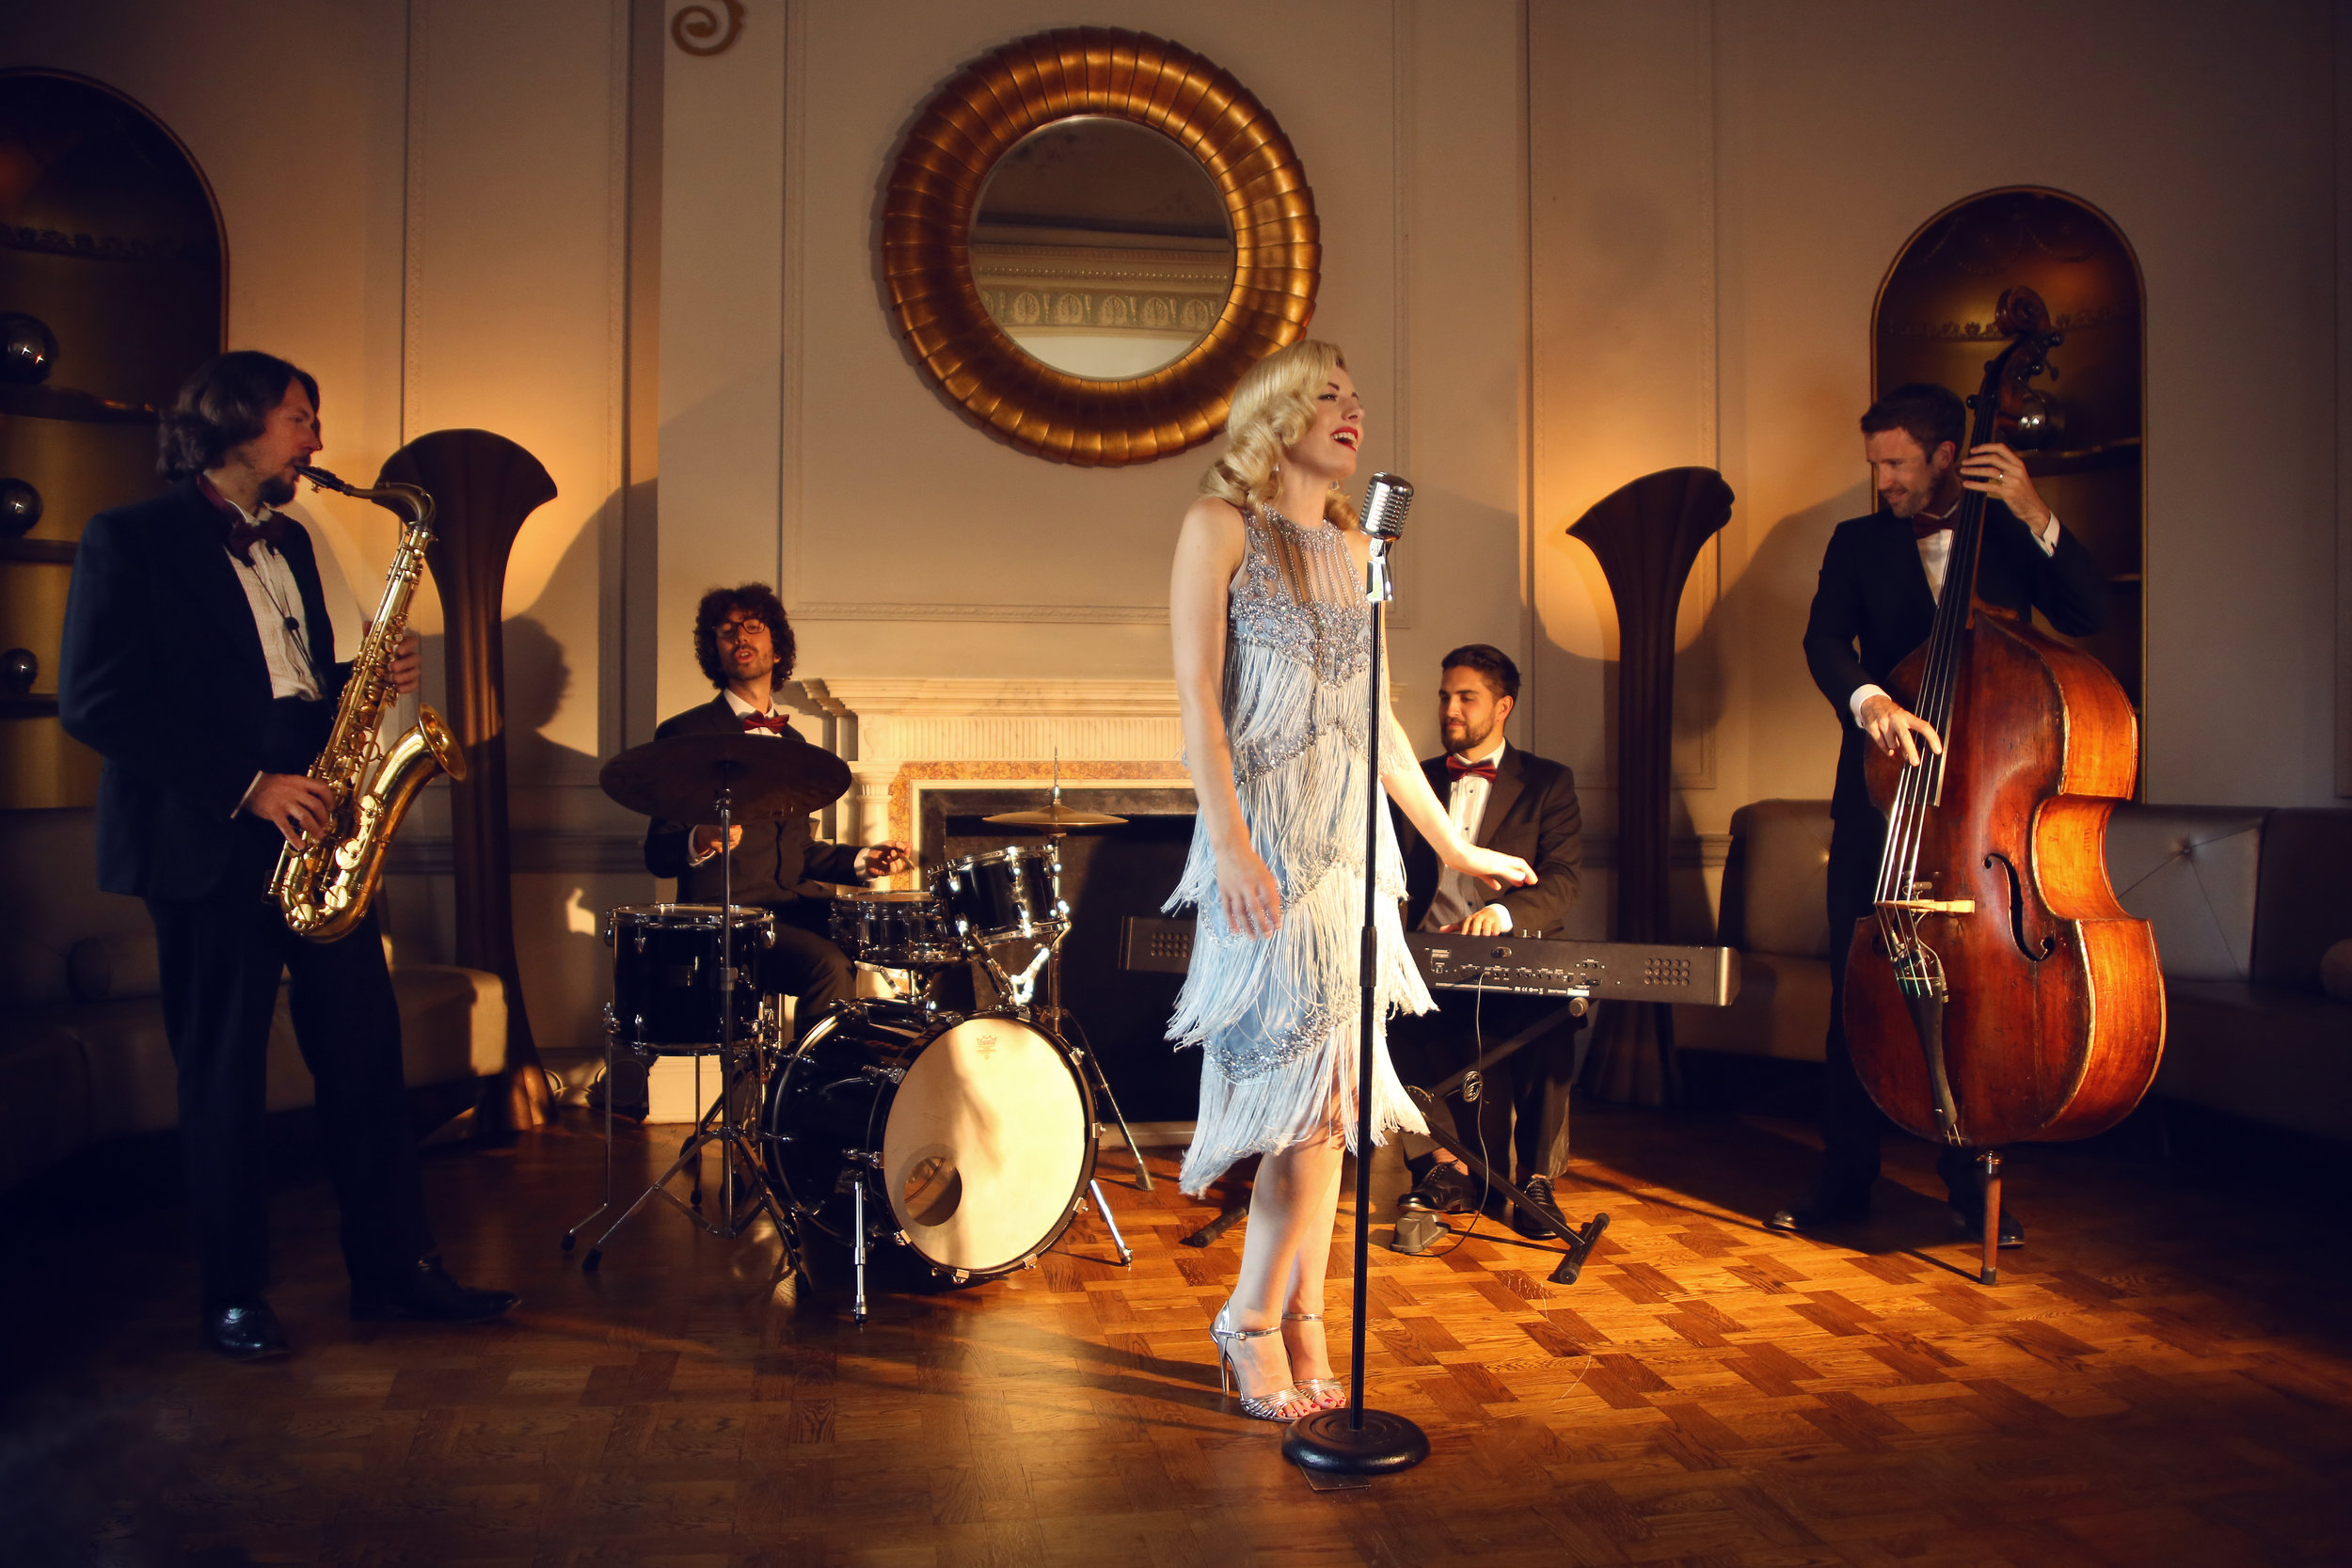 Sarah Goodwin and her live band - singing Jazz classics and modern hits with a vintage twist